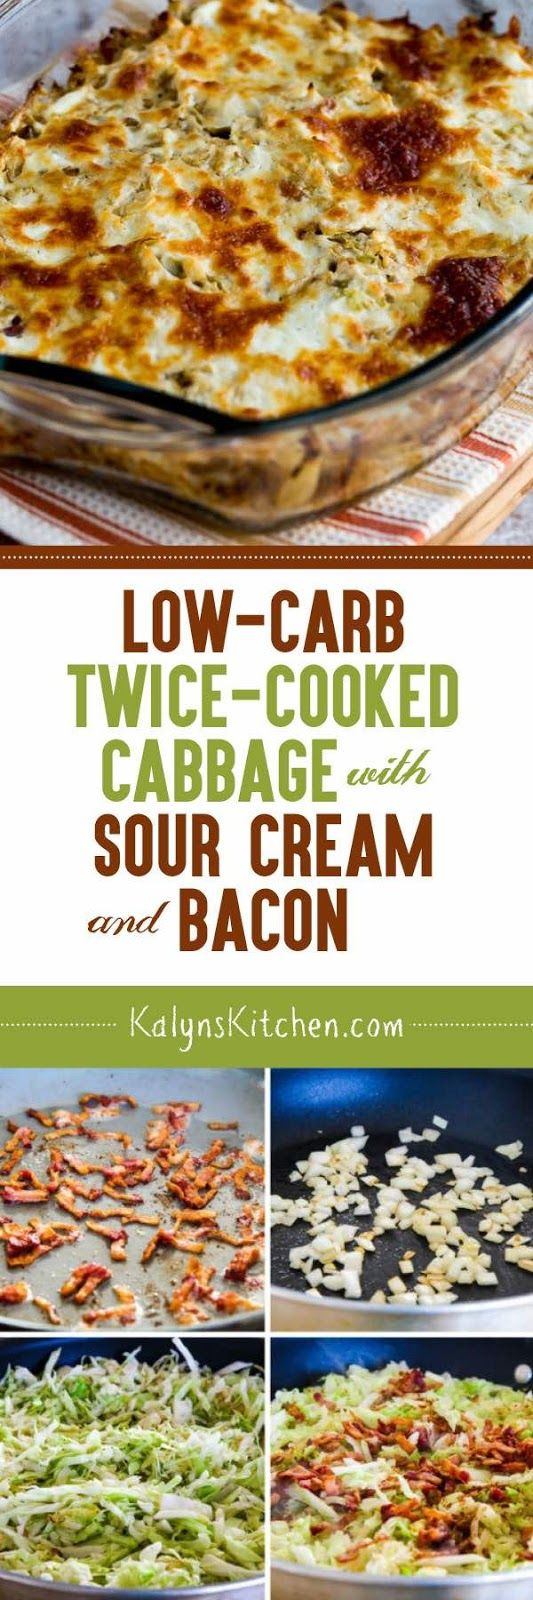 Low-Carb Twice-Cooked Cabbage with Sour Cream and Bacon found on KalynsKitchen.com